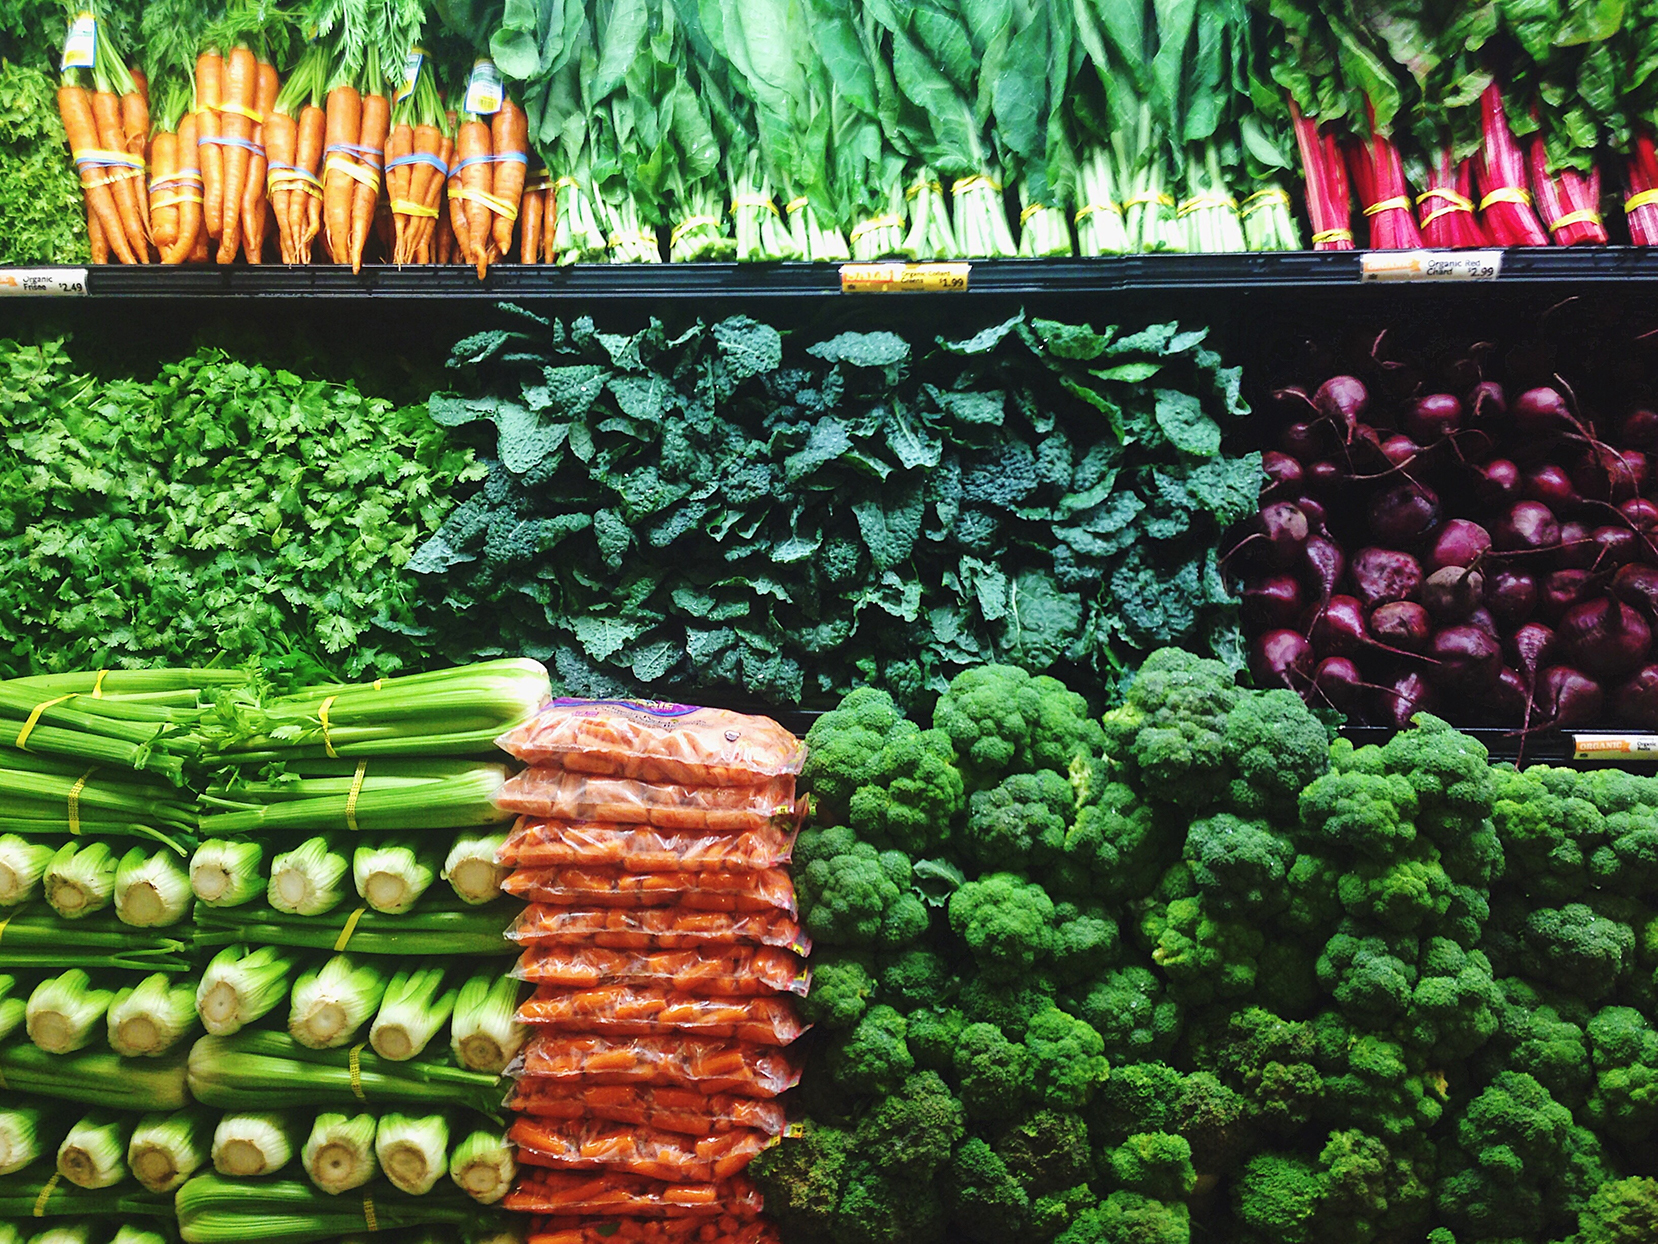 fresh produce in a grocery store